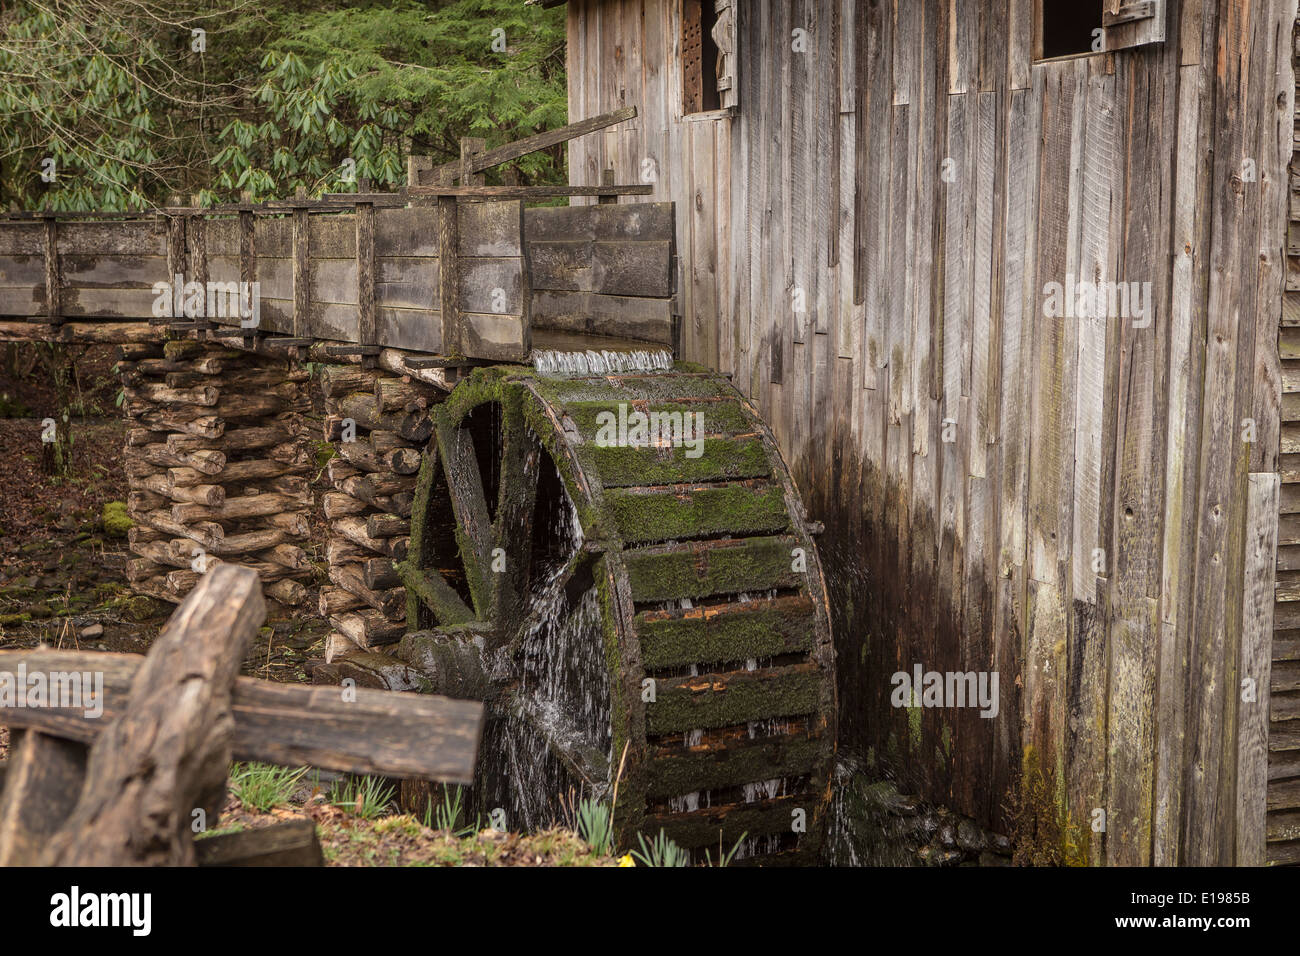 John Kabel Grist Mill ist in Cades Cove Gebiet des Great Smoky Mountains National Park in Tennessee abgebildet. Stockfoto